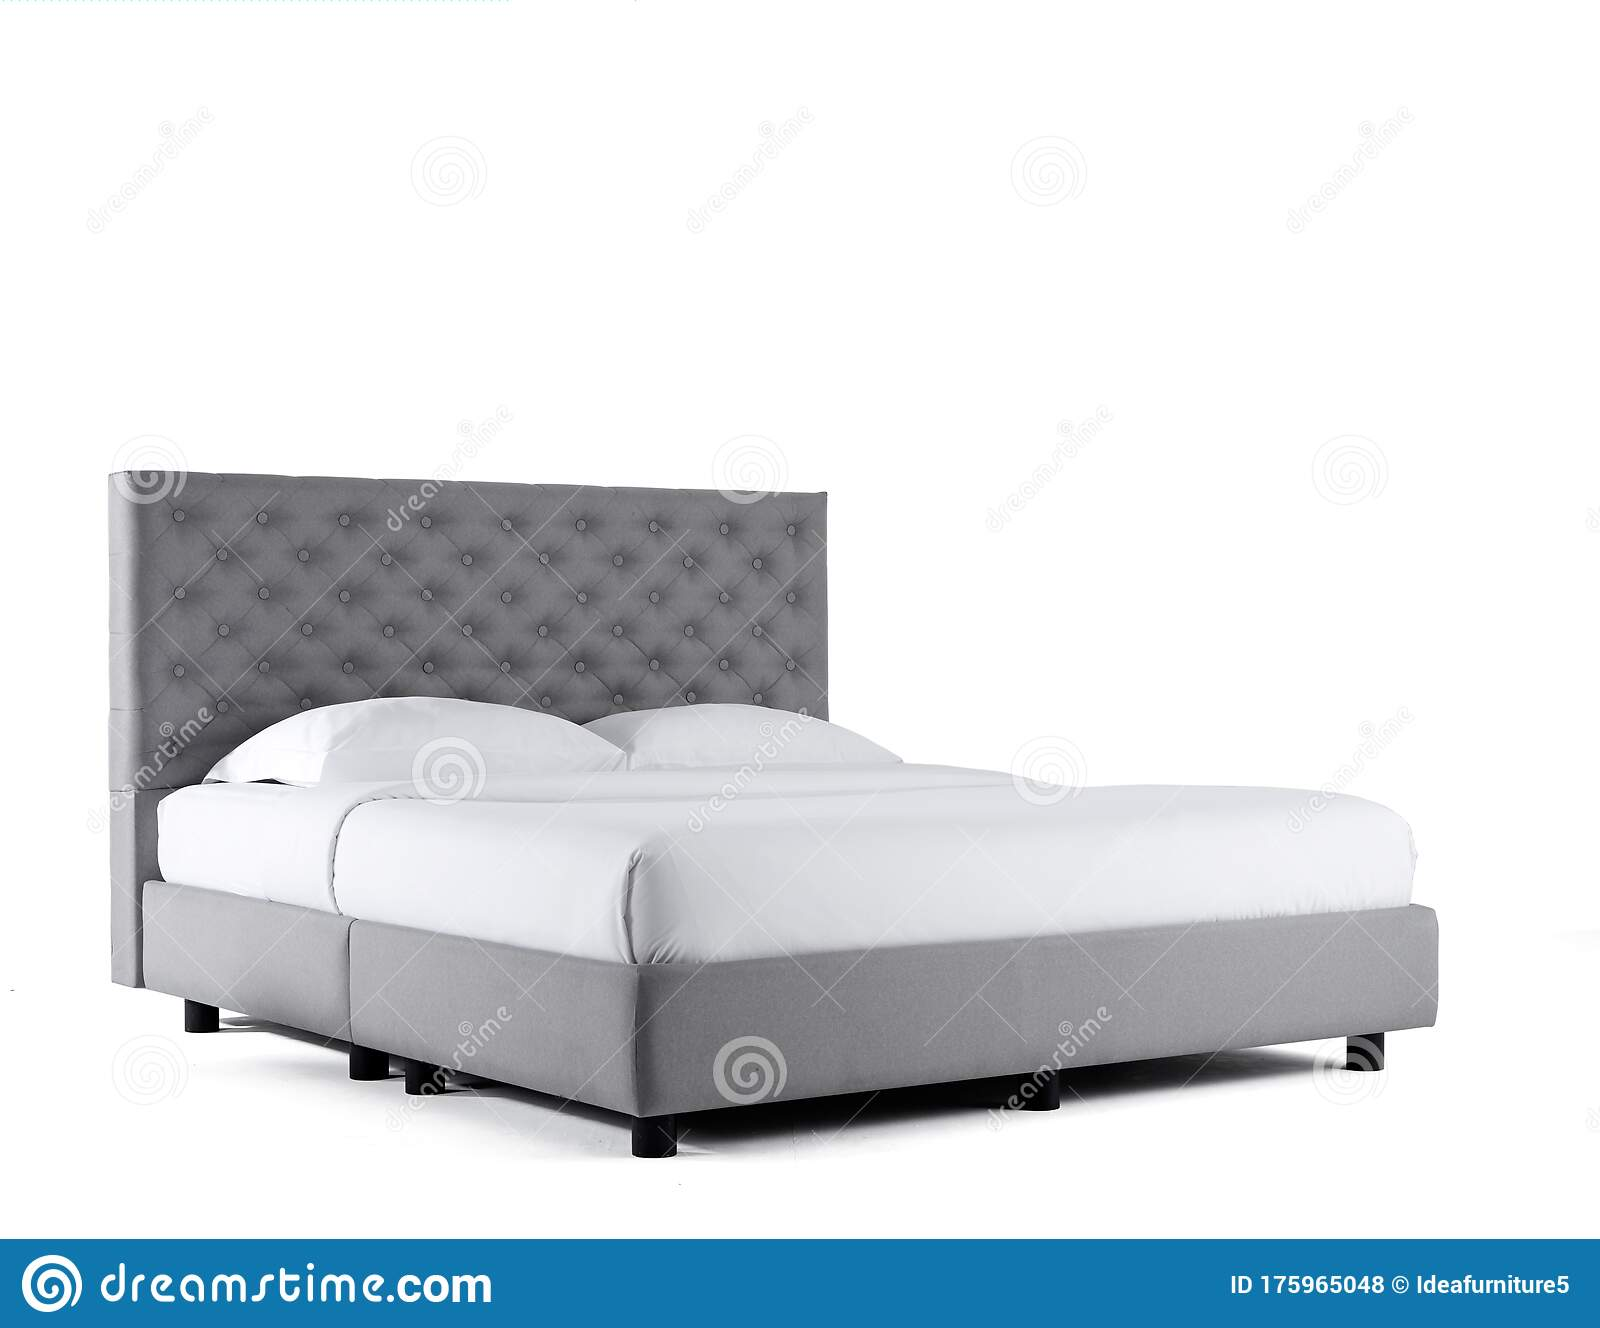 Upholstered Bed Isolated On White Background King Size Luxury Bed With Mattress And Pillows Bedroom Furniture Stock Photo Image Of Classic Black 175965048